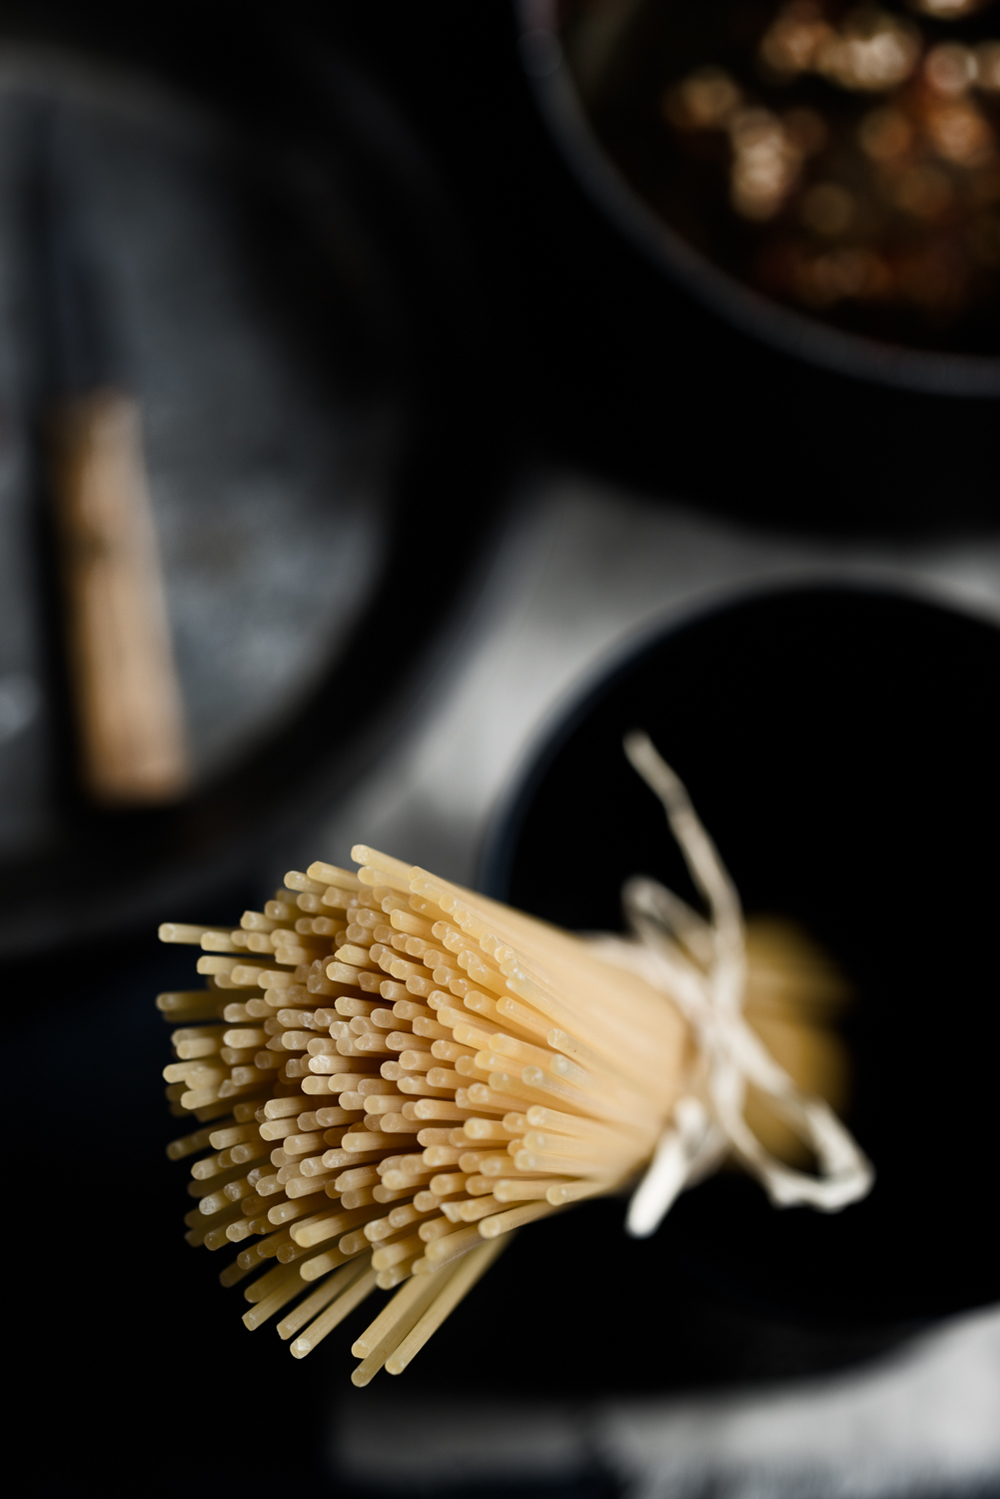 test boiling water for pasta-254-Edit.JPG